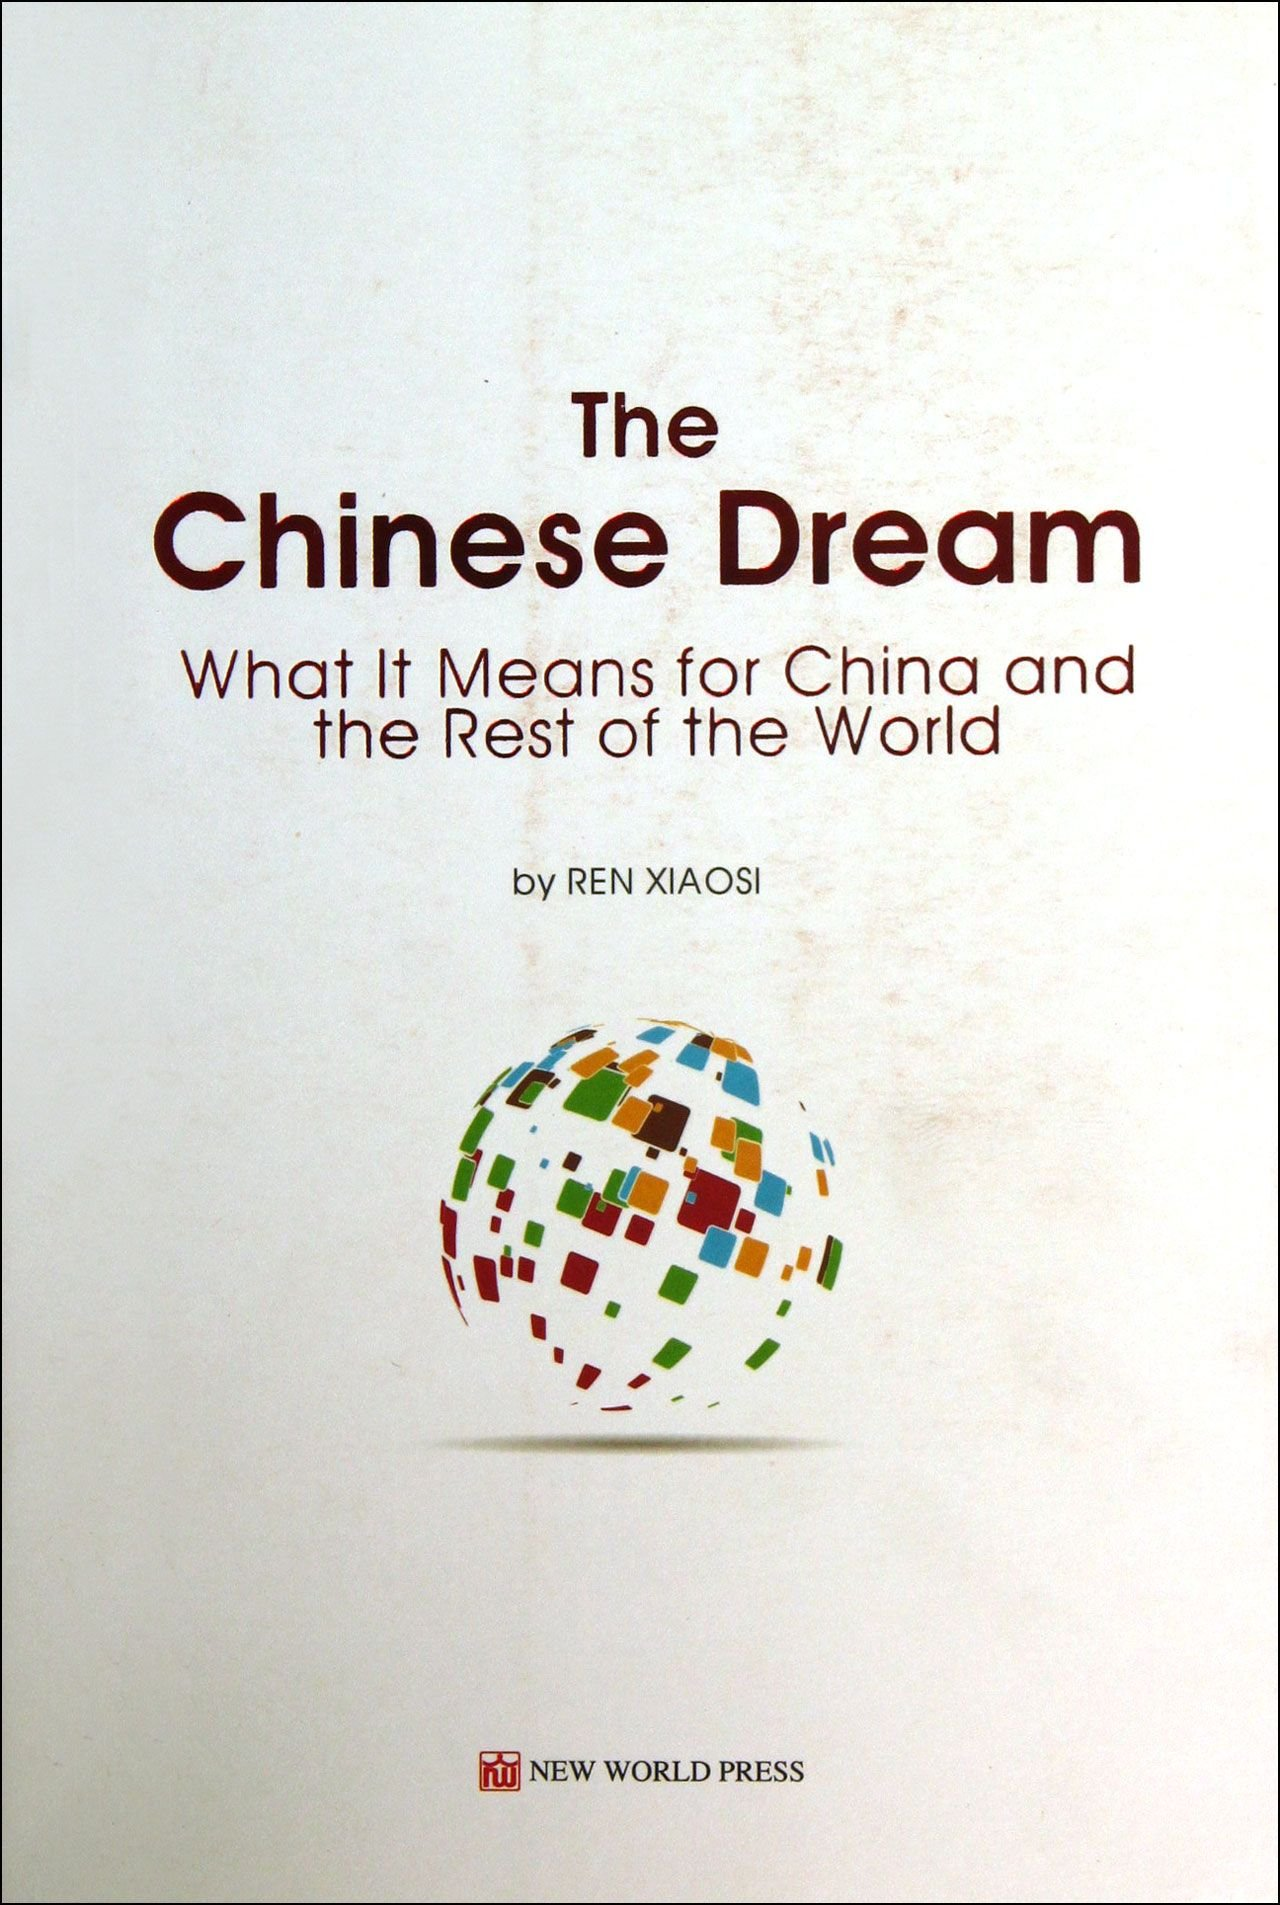 The Chinese Dream - What It Means for China and the Rest of the world